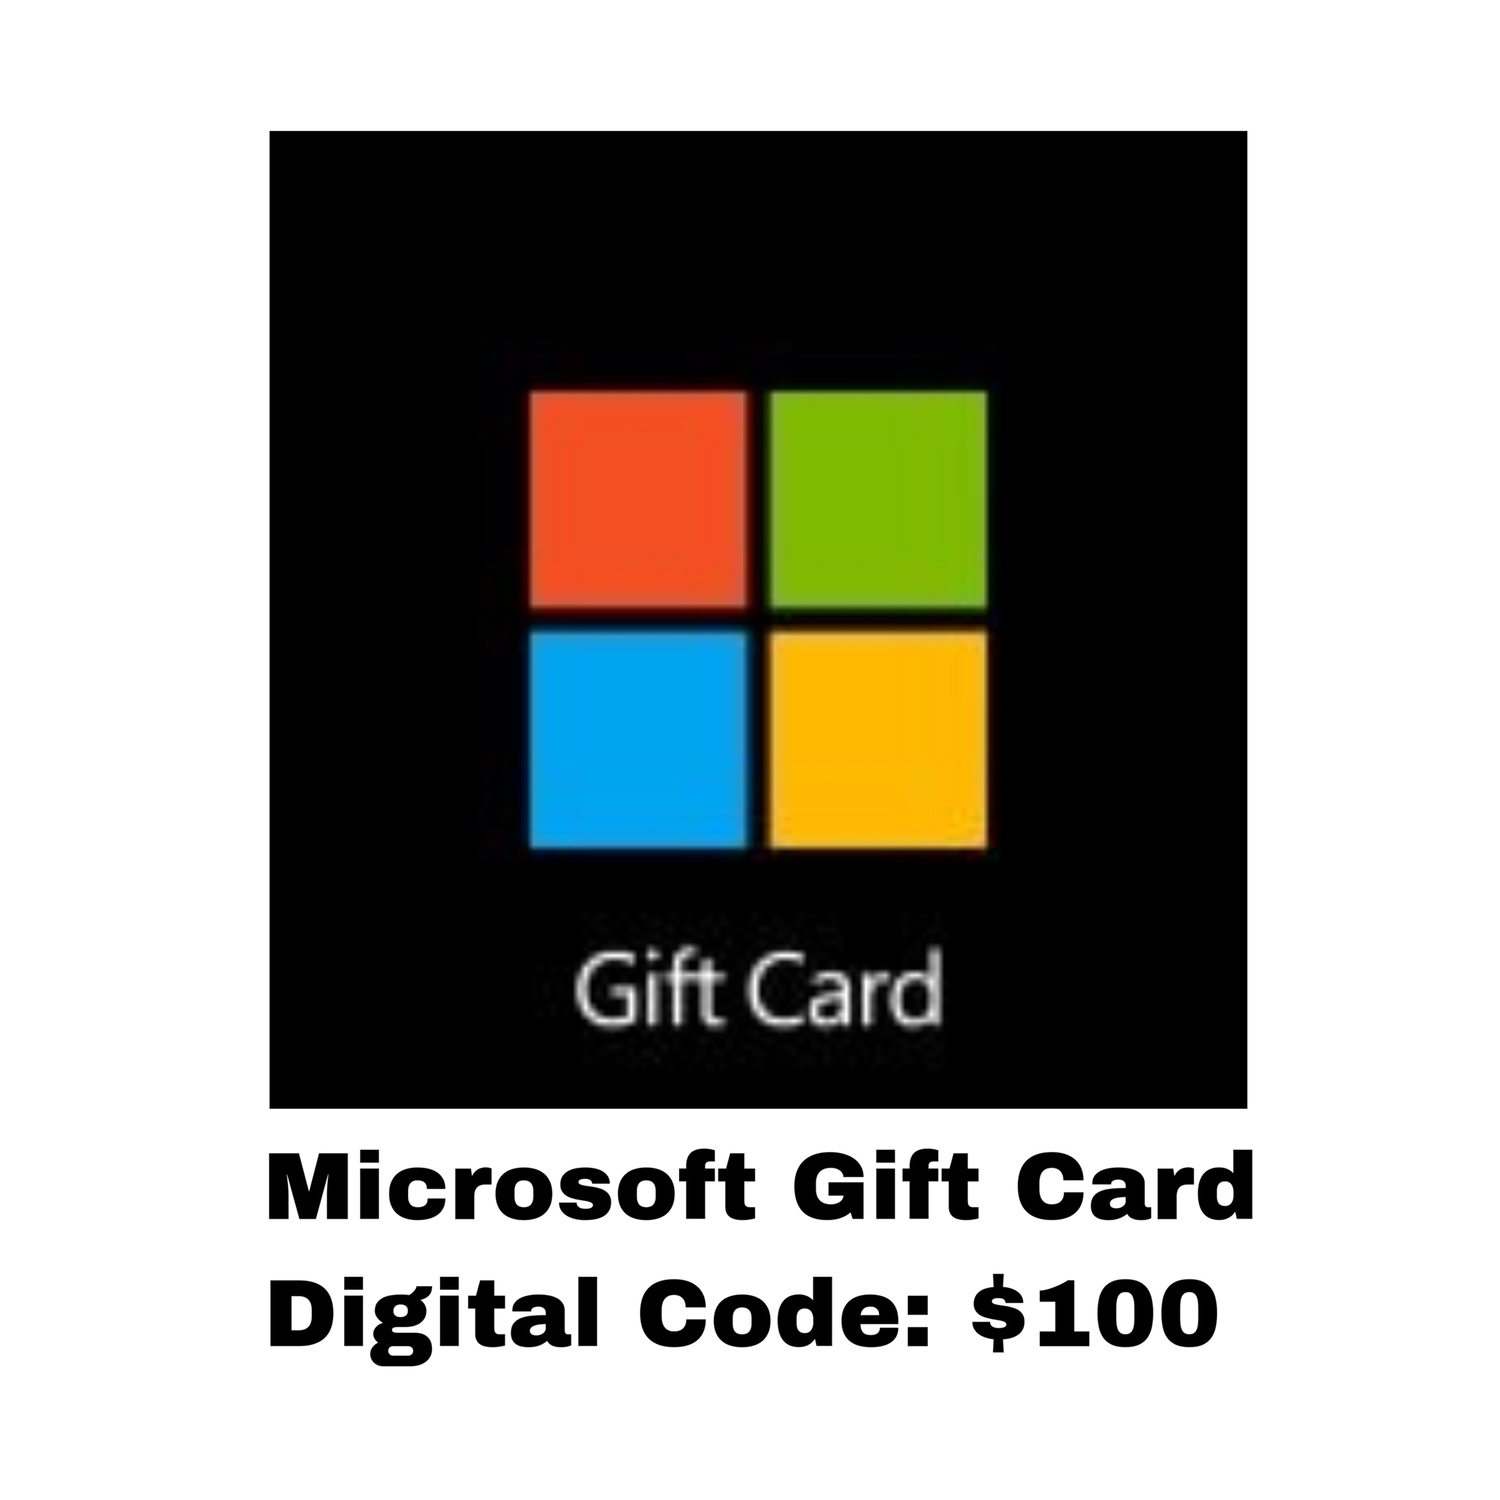 Microsoft Gift Card Digital Code: $100 - Windows / Xbox